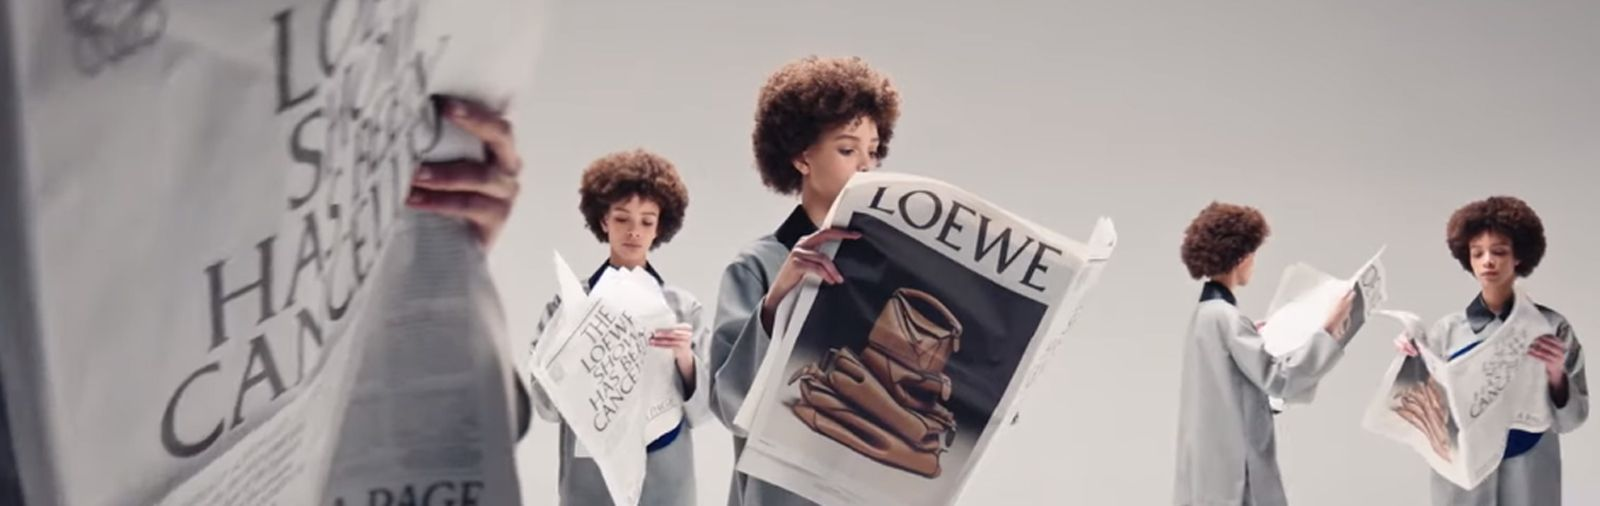 Loewe FW 2021 collection_A Show in The News_RRSS